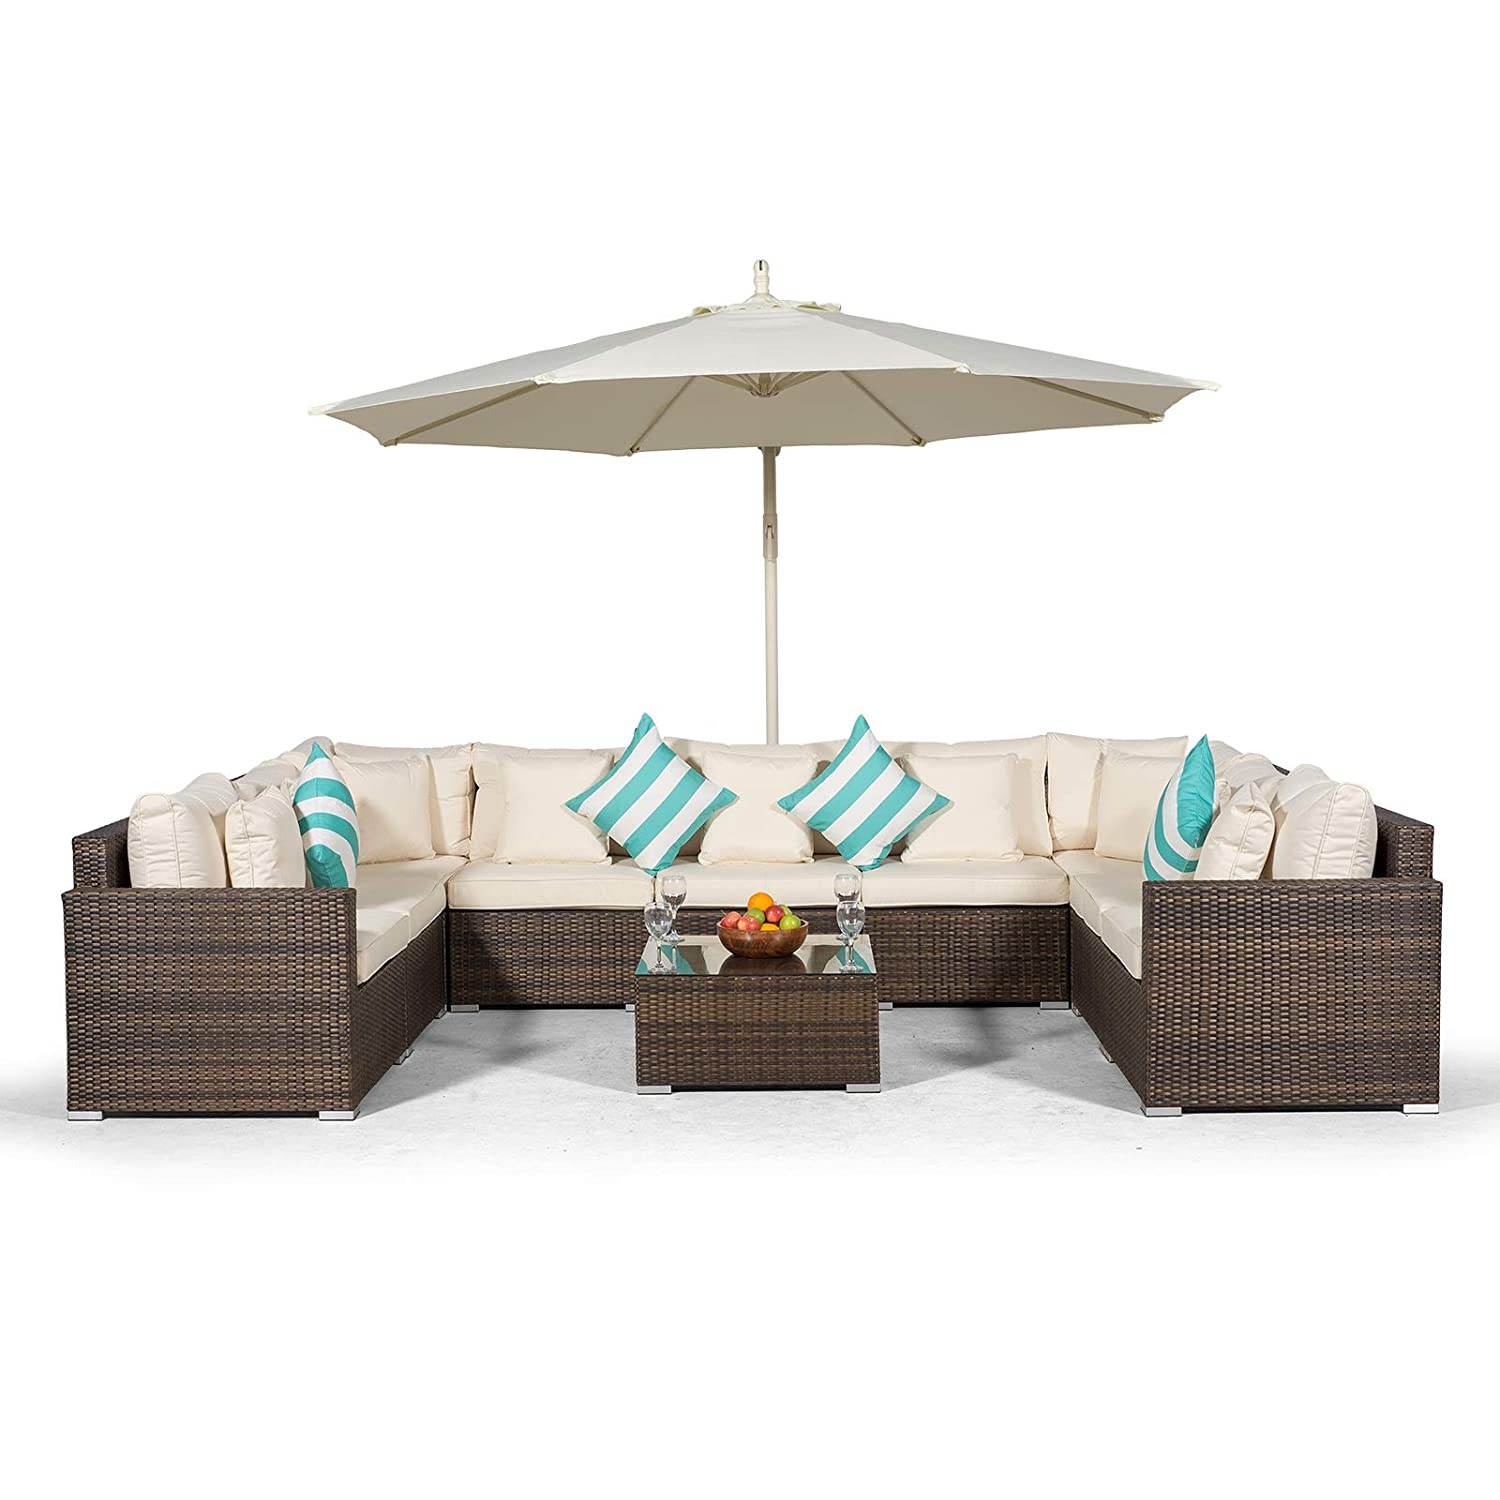 Set Giardino In Rattan.Giardino Havana 9 Seater Brown U Shaped Large Rattan Sofa Set 11